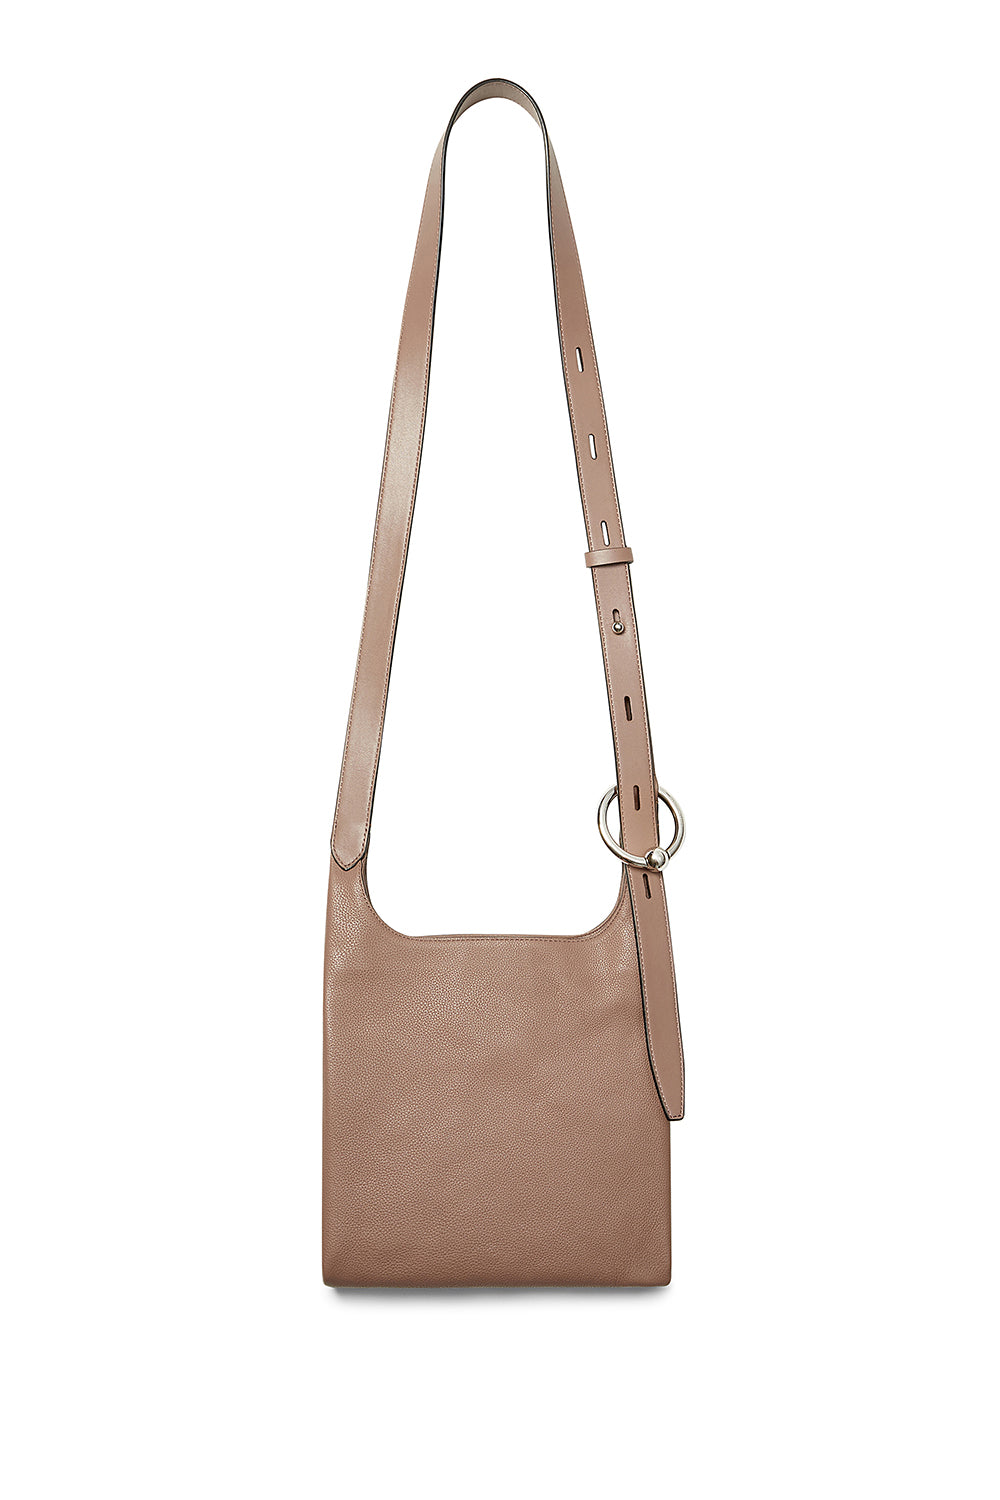 Karlie Small Feed Bag in Mink